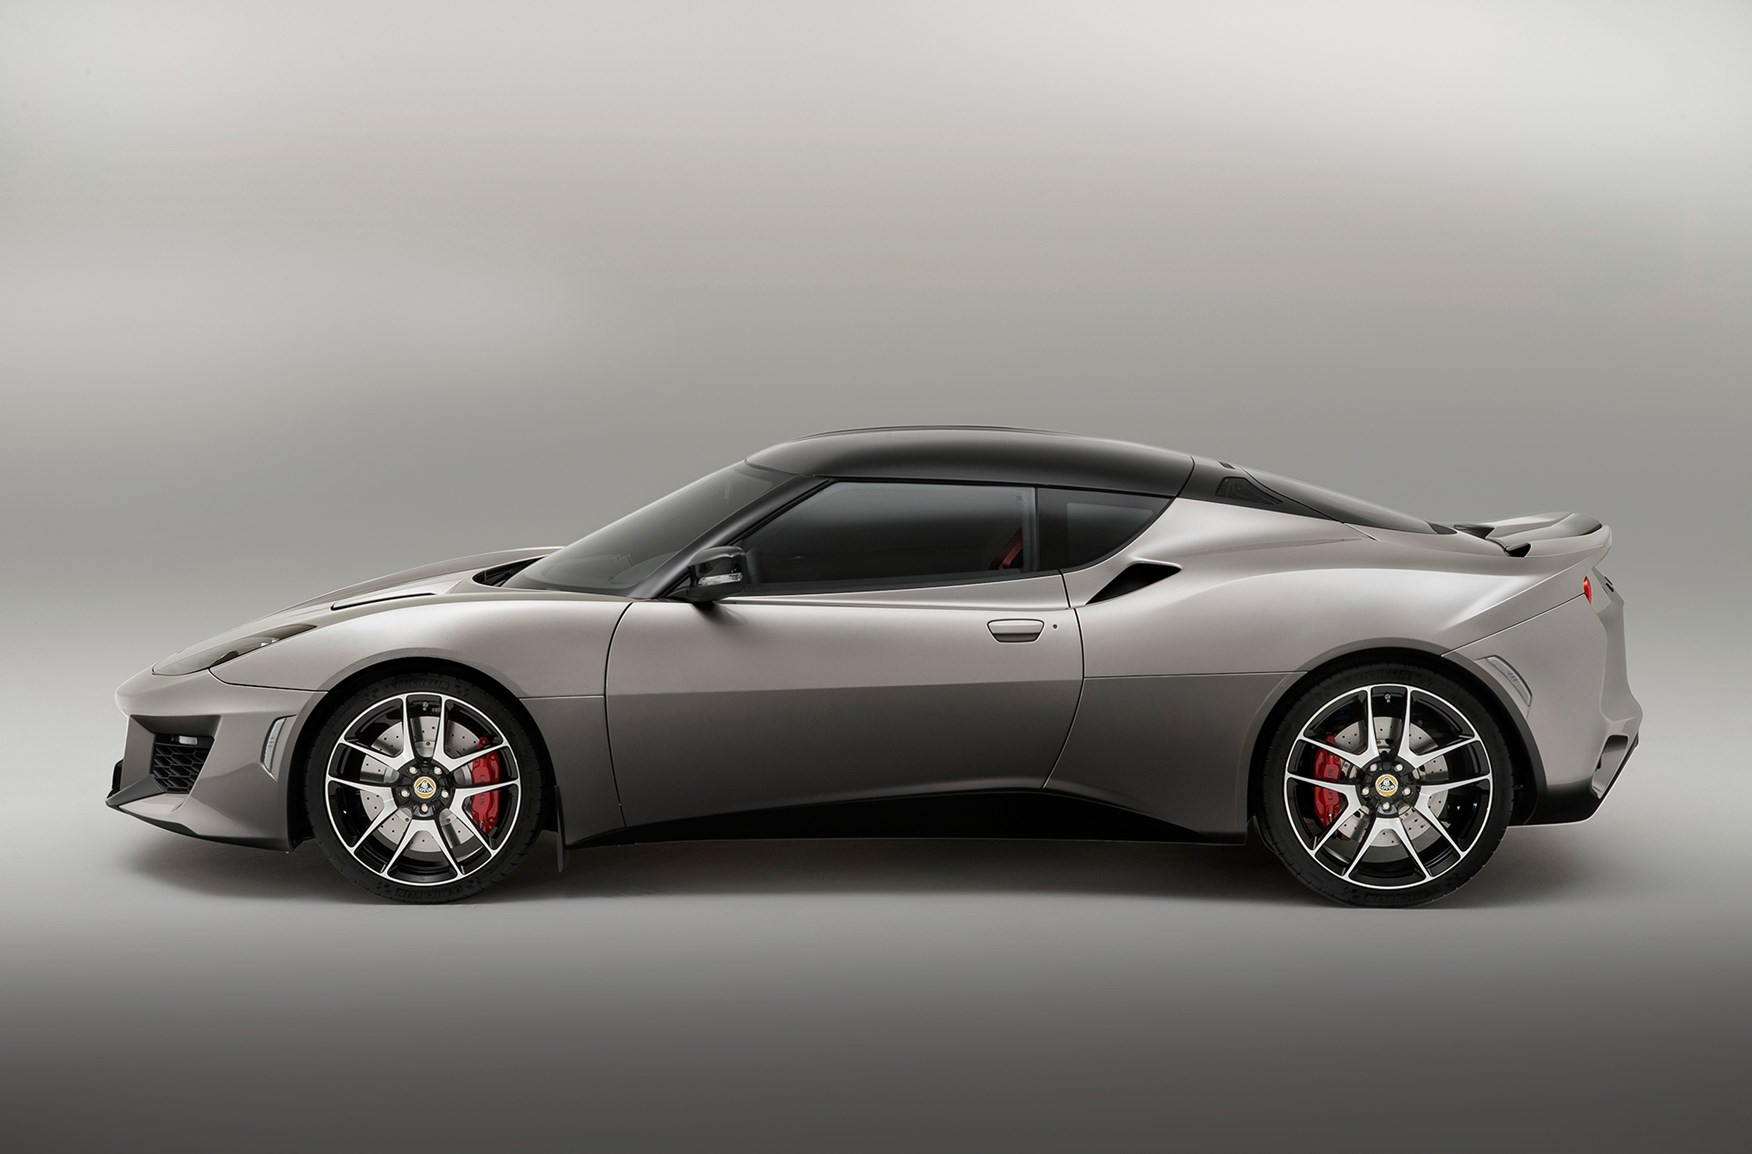 evora 400 still identifiably a lotus but new too